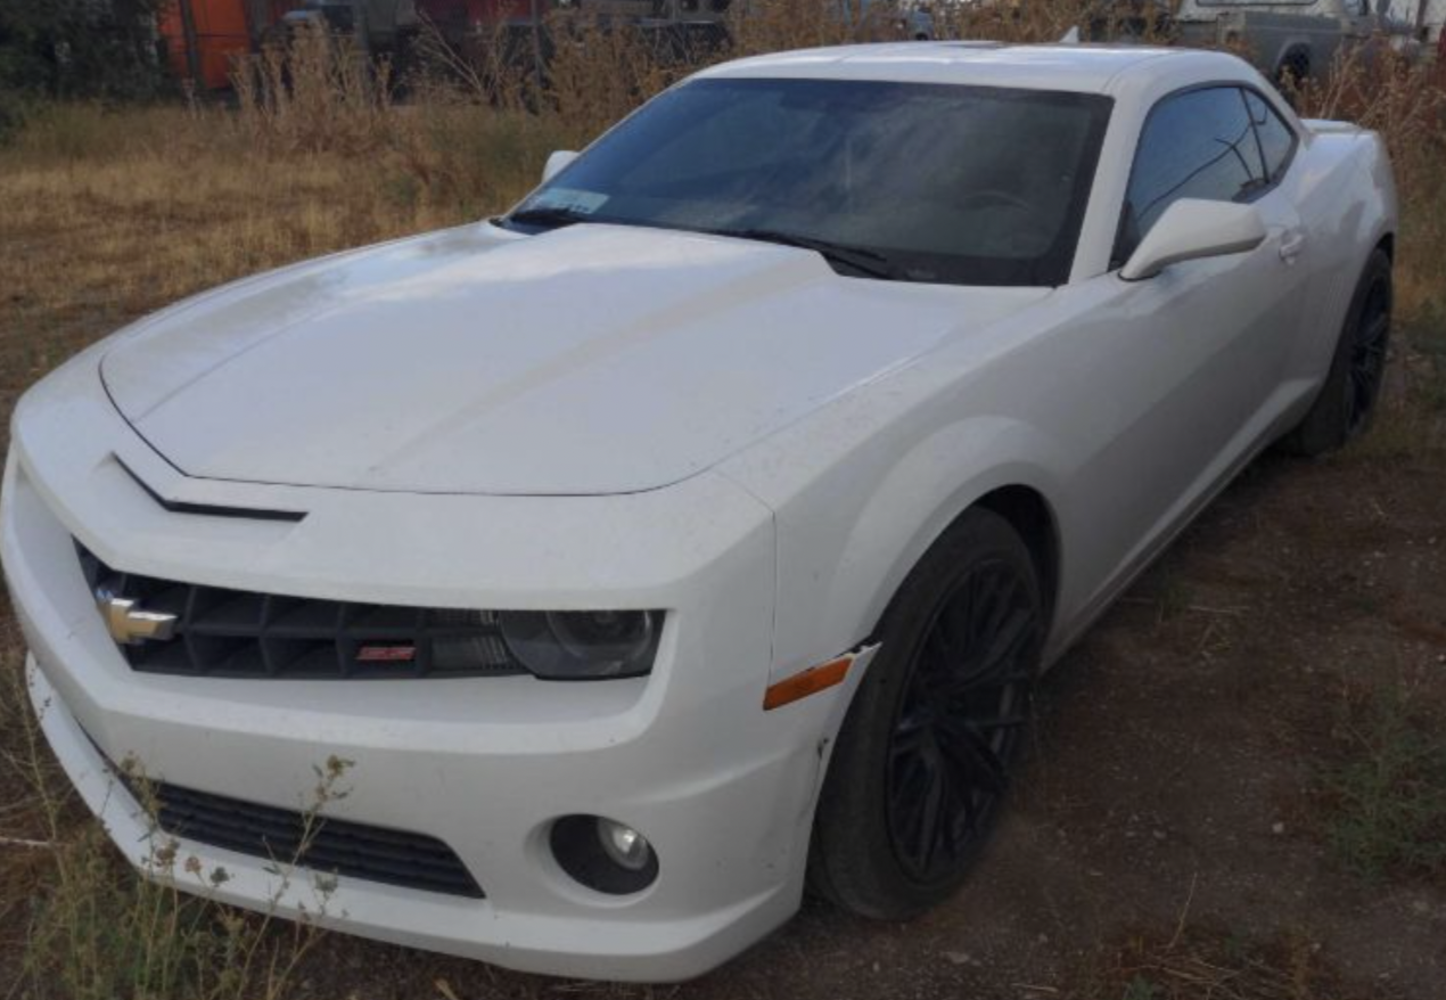 Weekly Pallet & Vehicle Auction 07-29-21